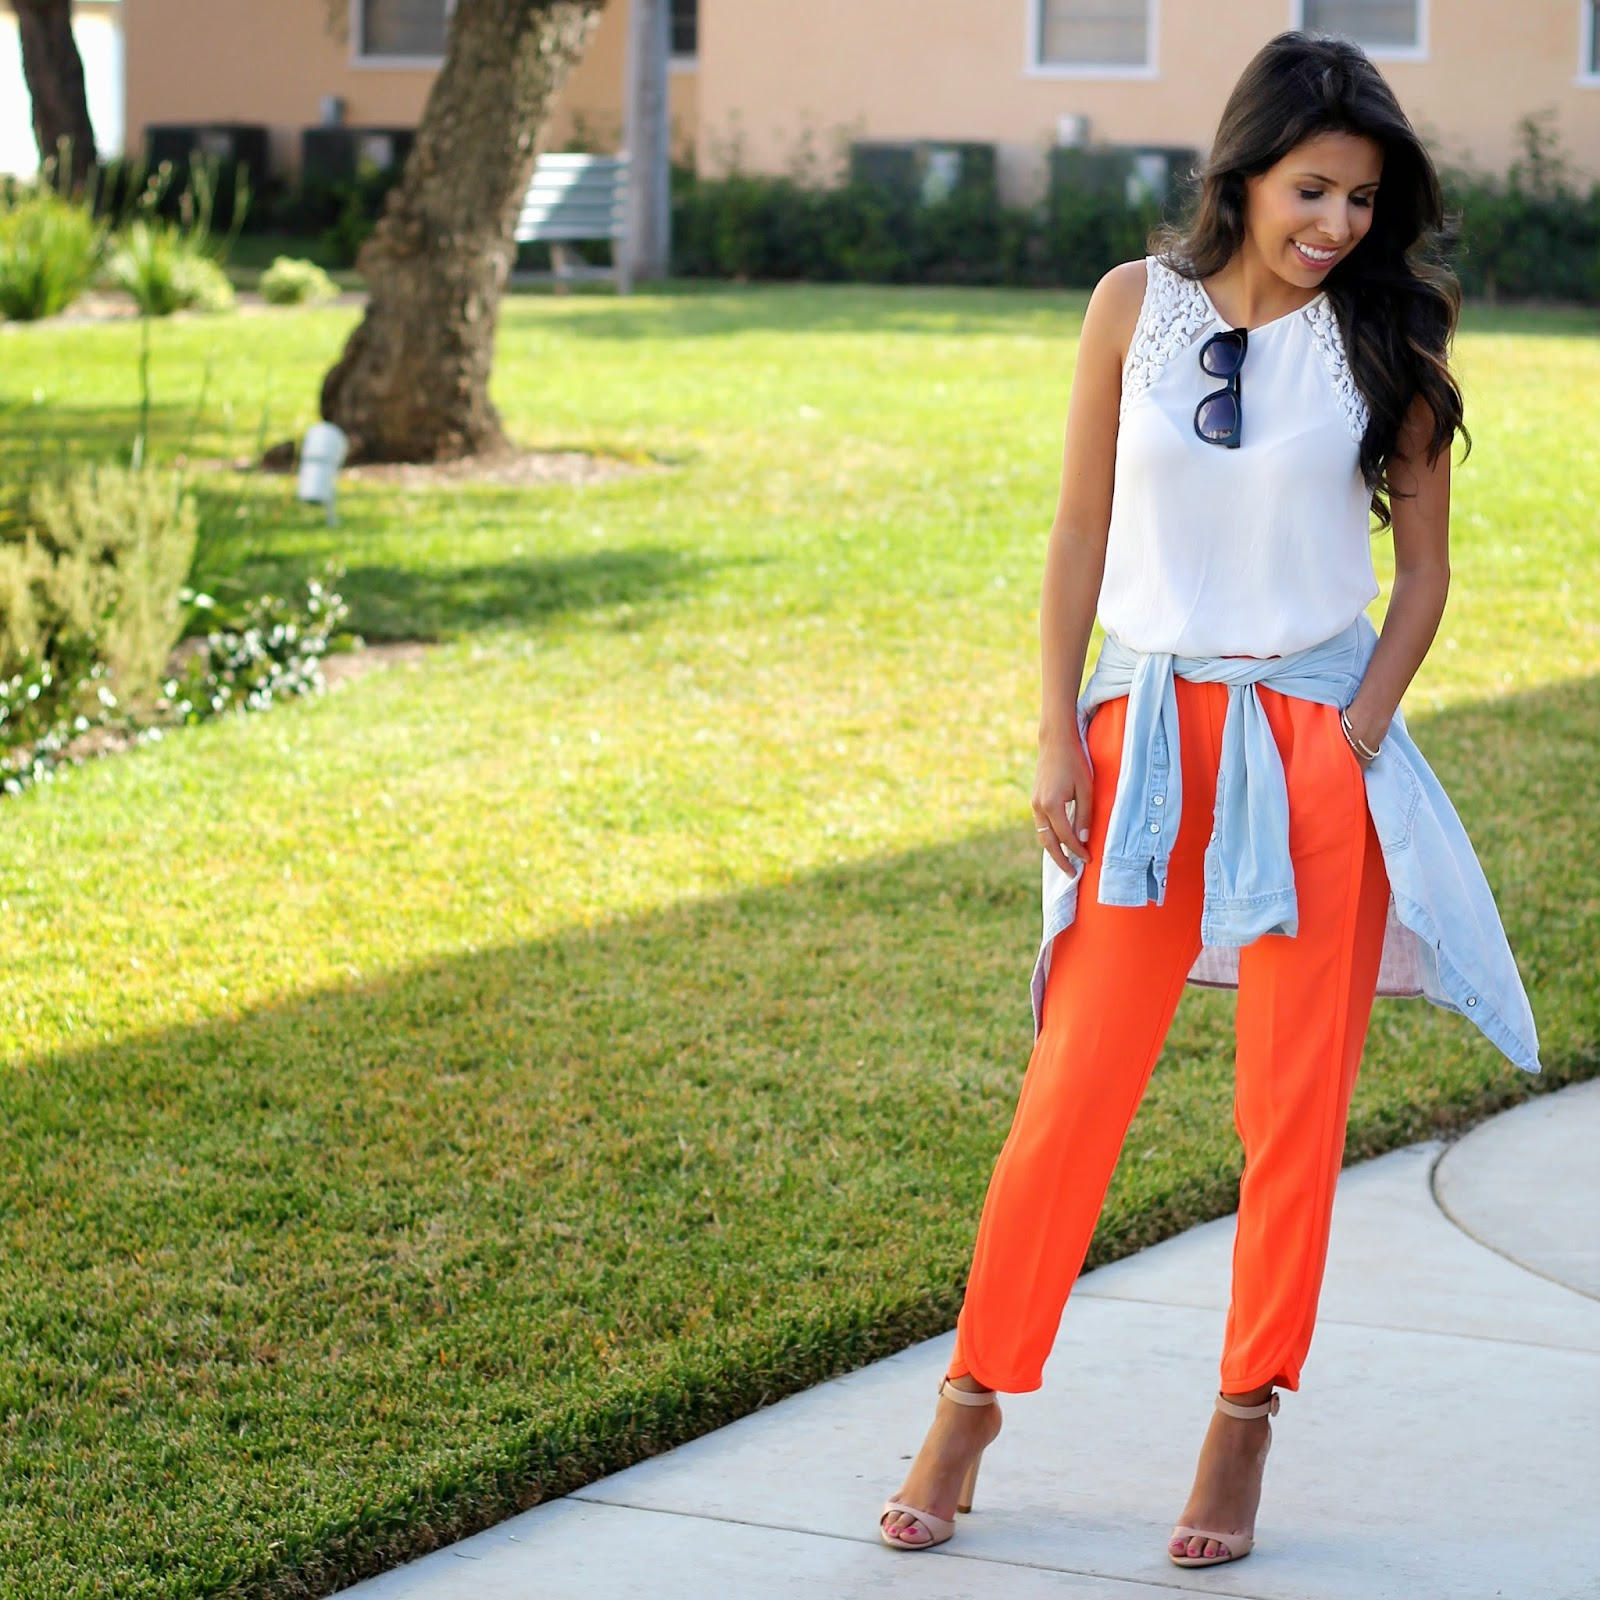 jogger pants, elastic pants for work, spring work outfit idea, how to style colorful pants, zara, jcrew outfit